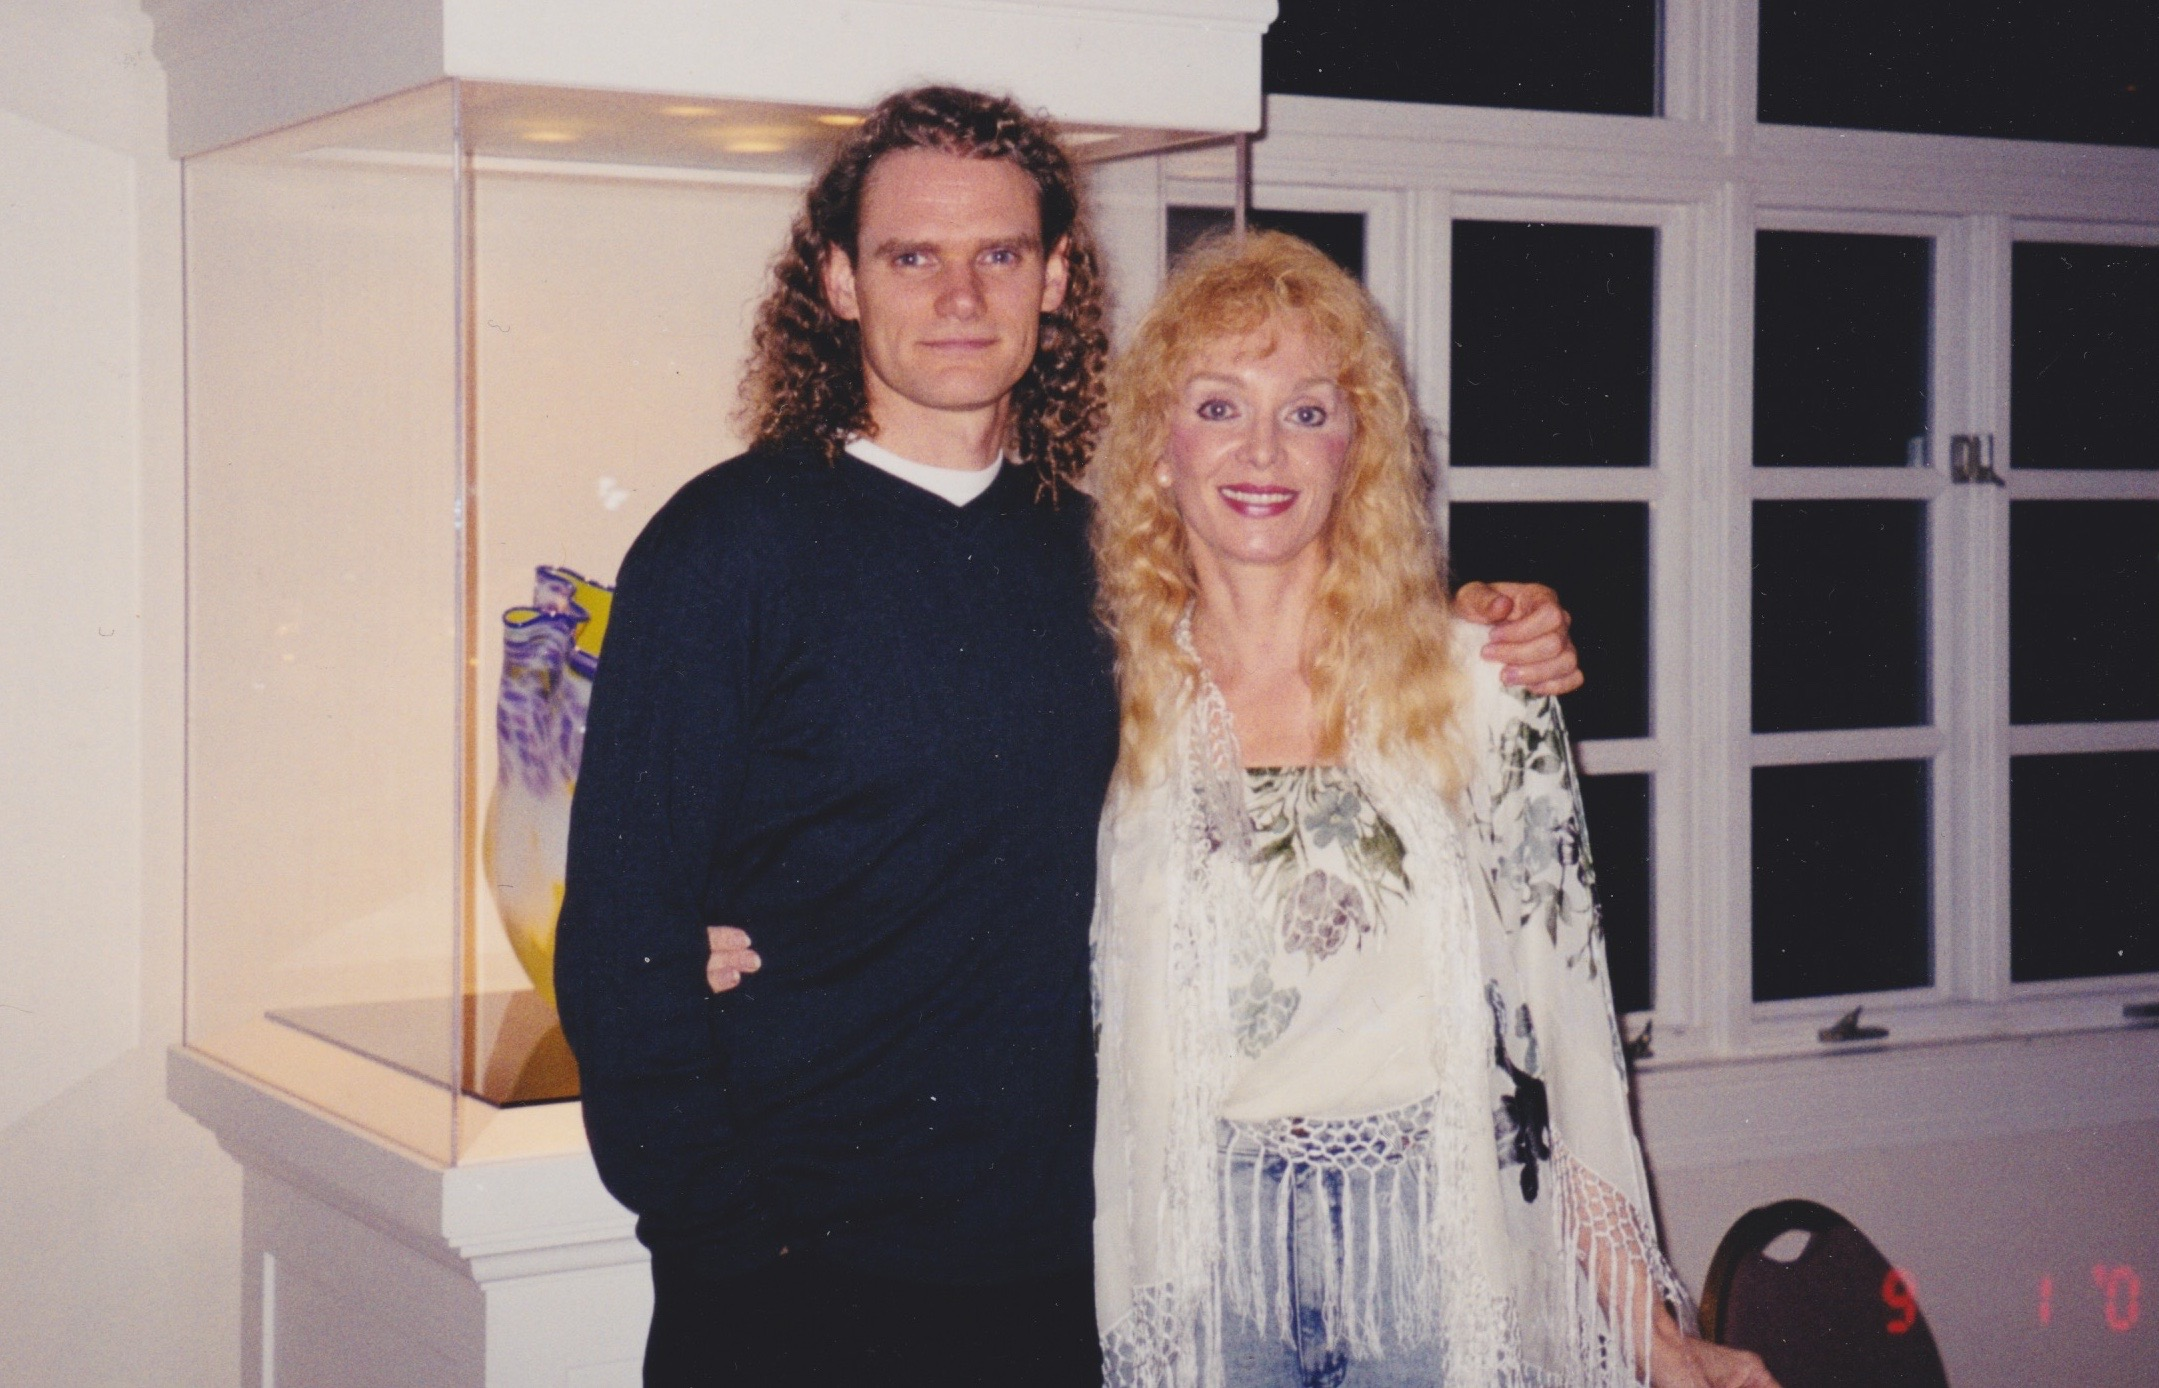 2002 with Jesse Cook